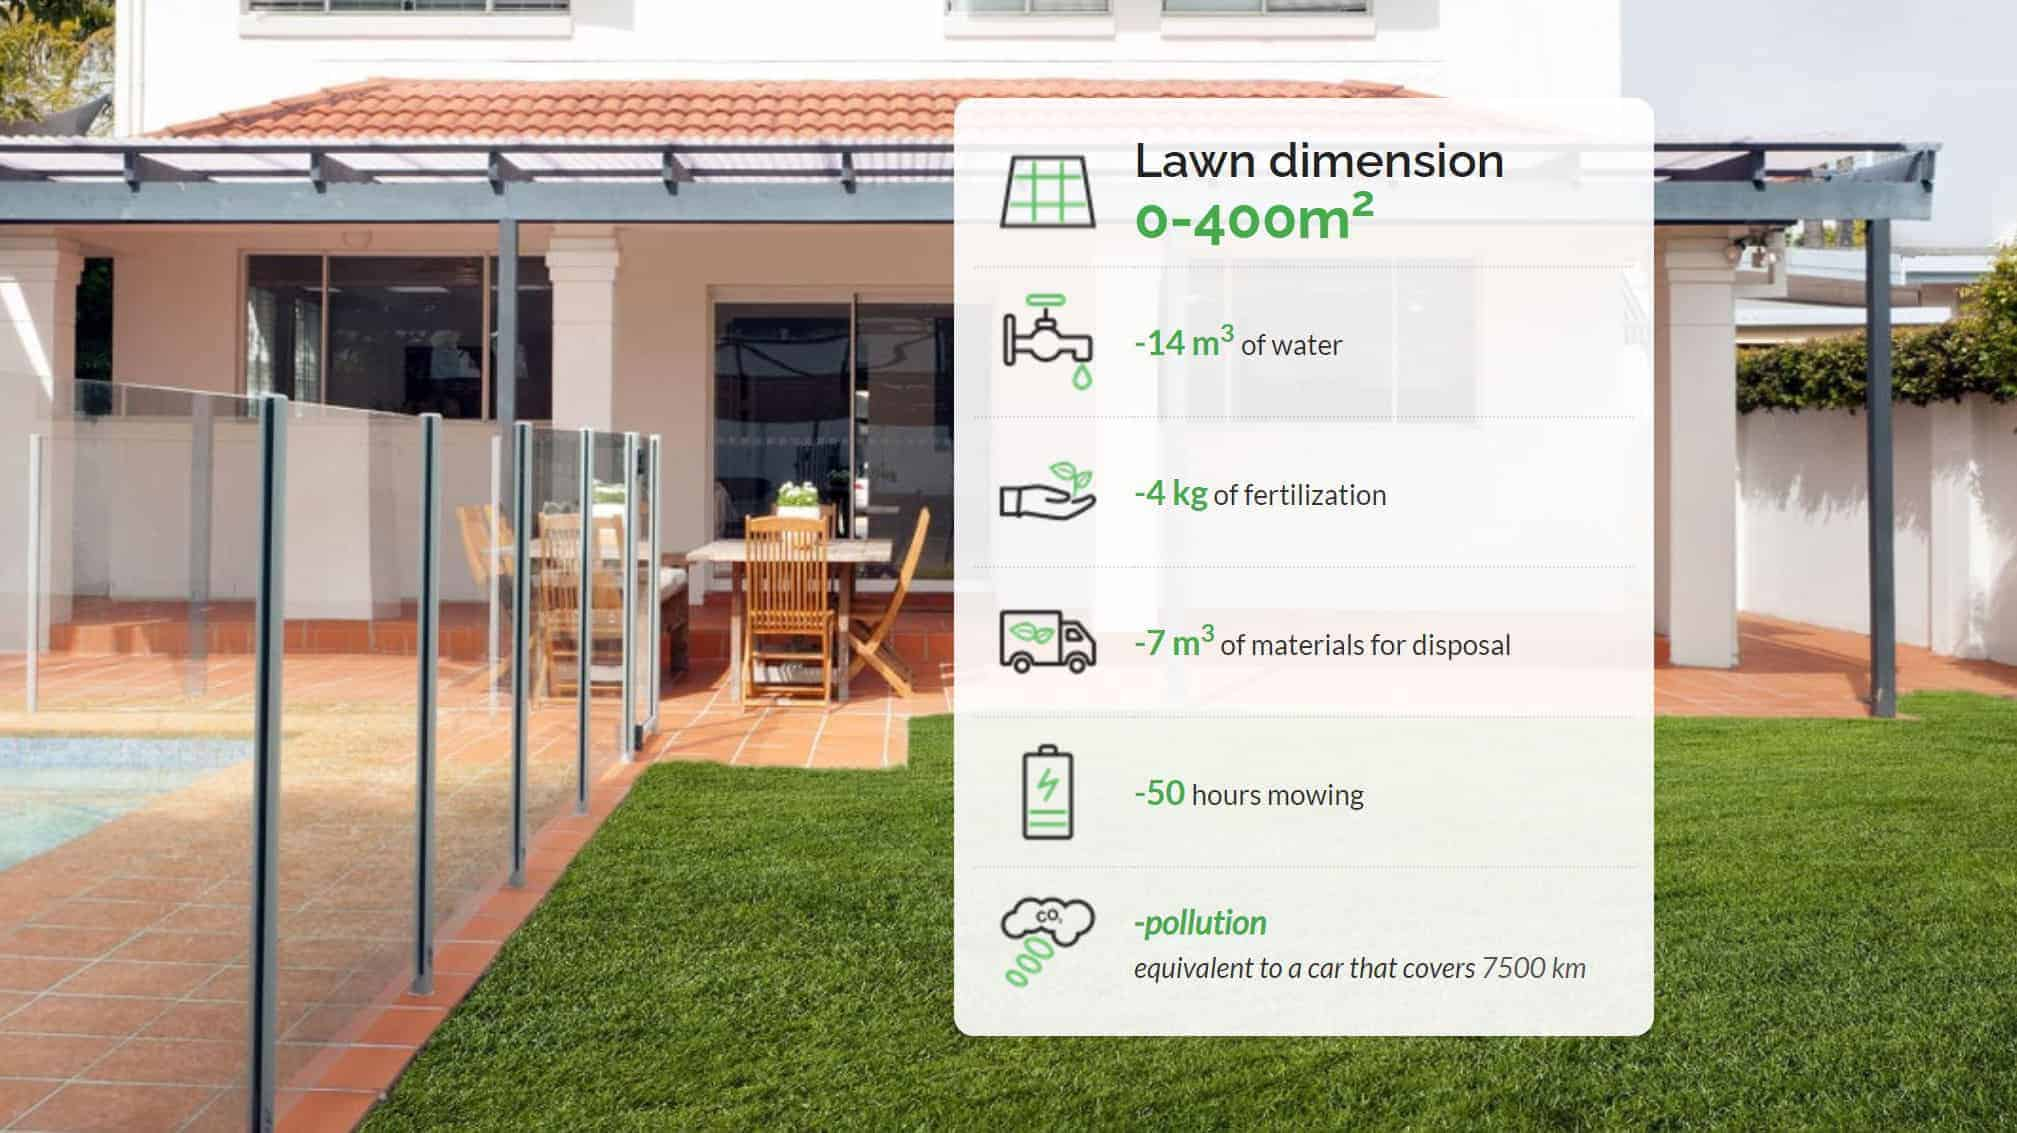 Annual saving by using a robotic mower in 0-400m2 lawn dimension-